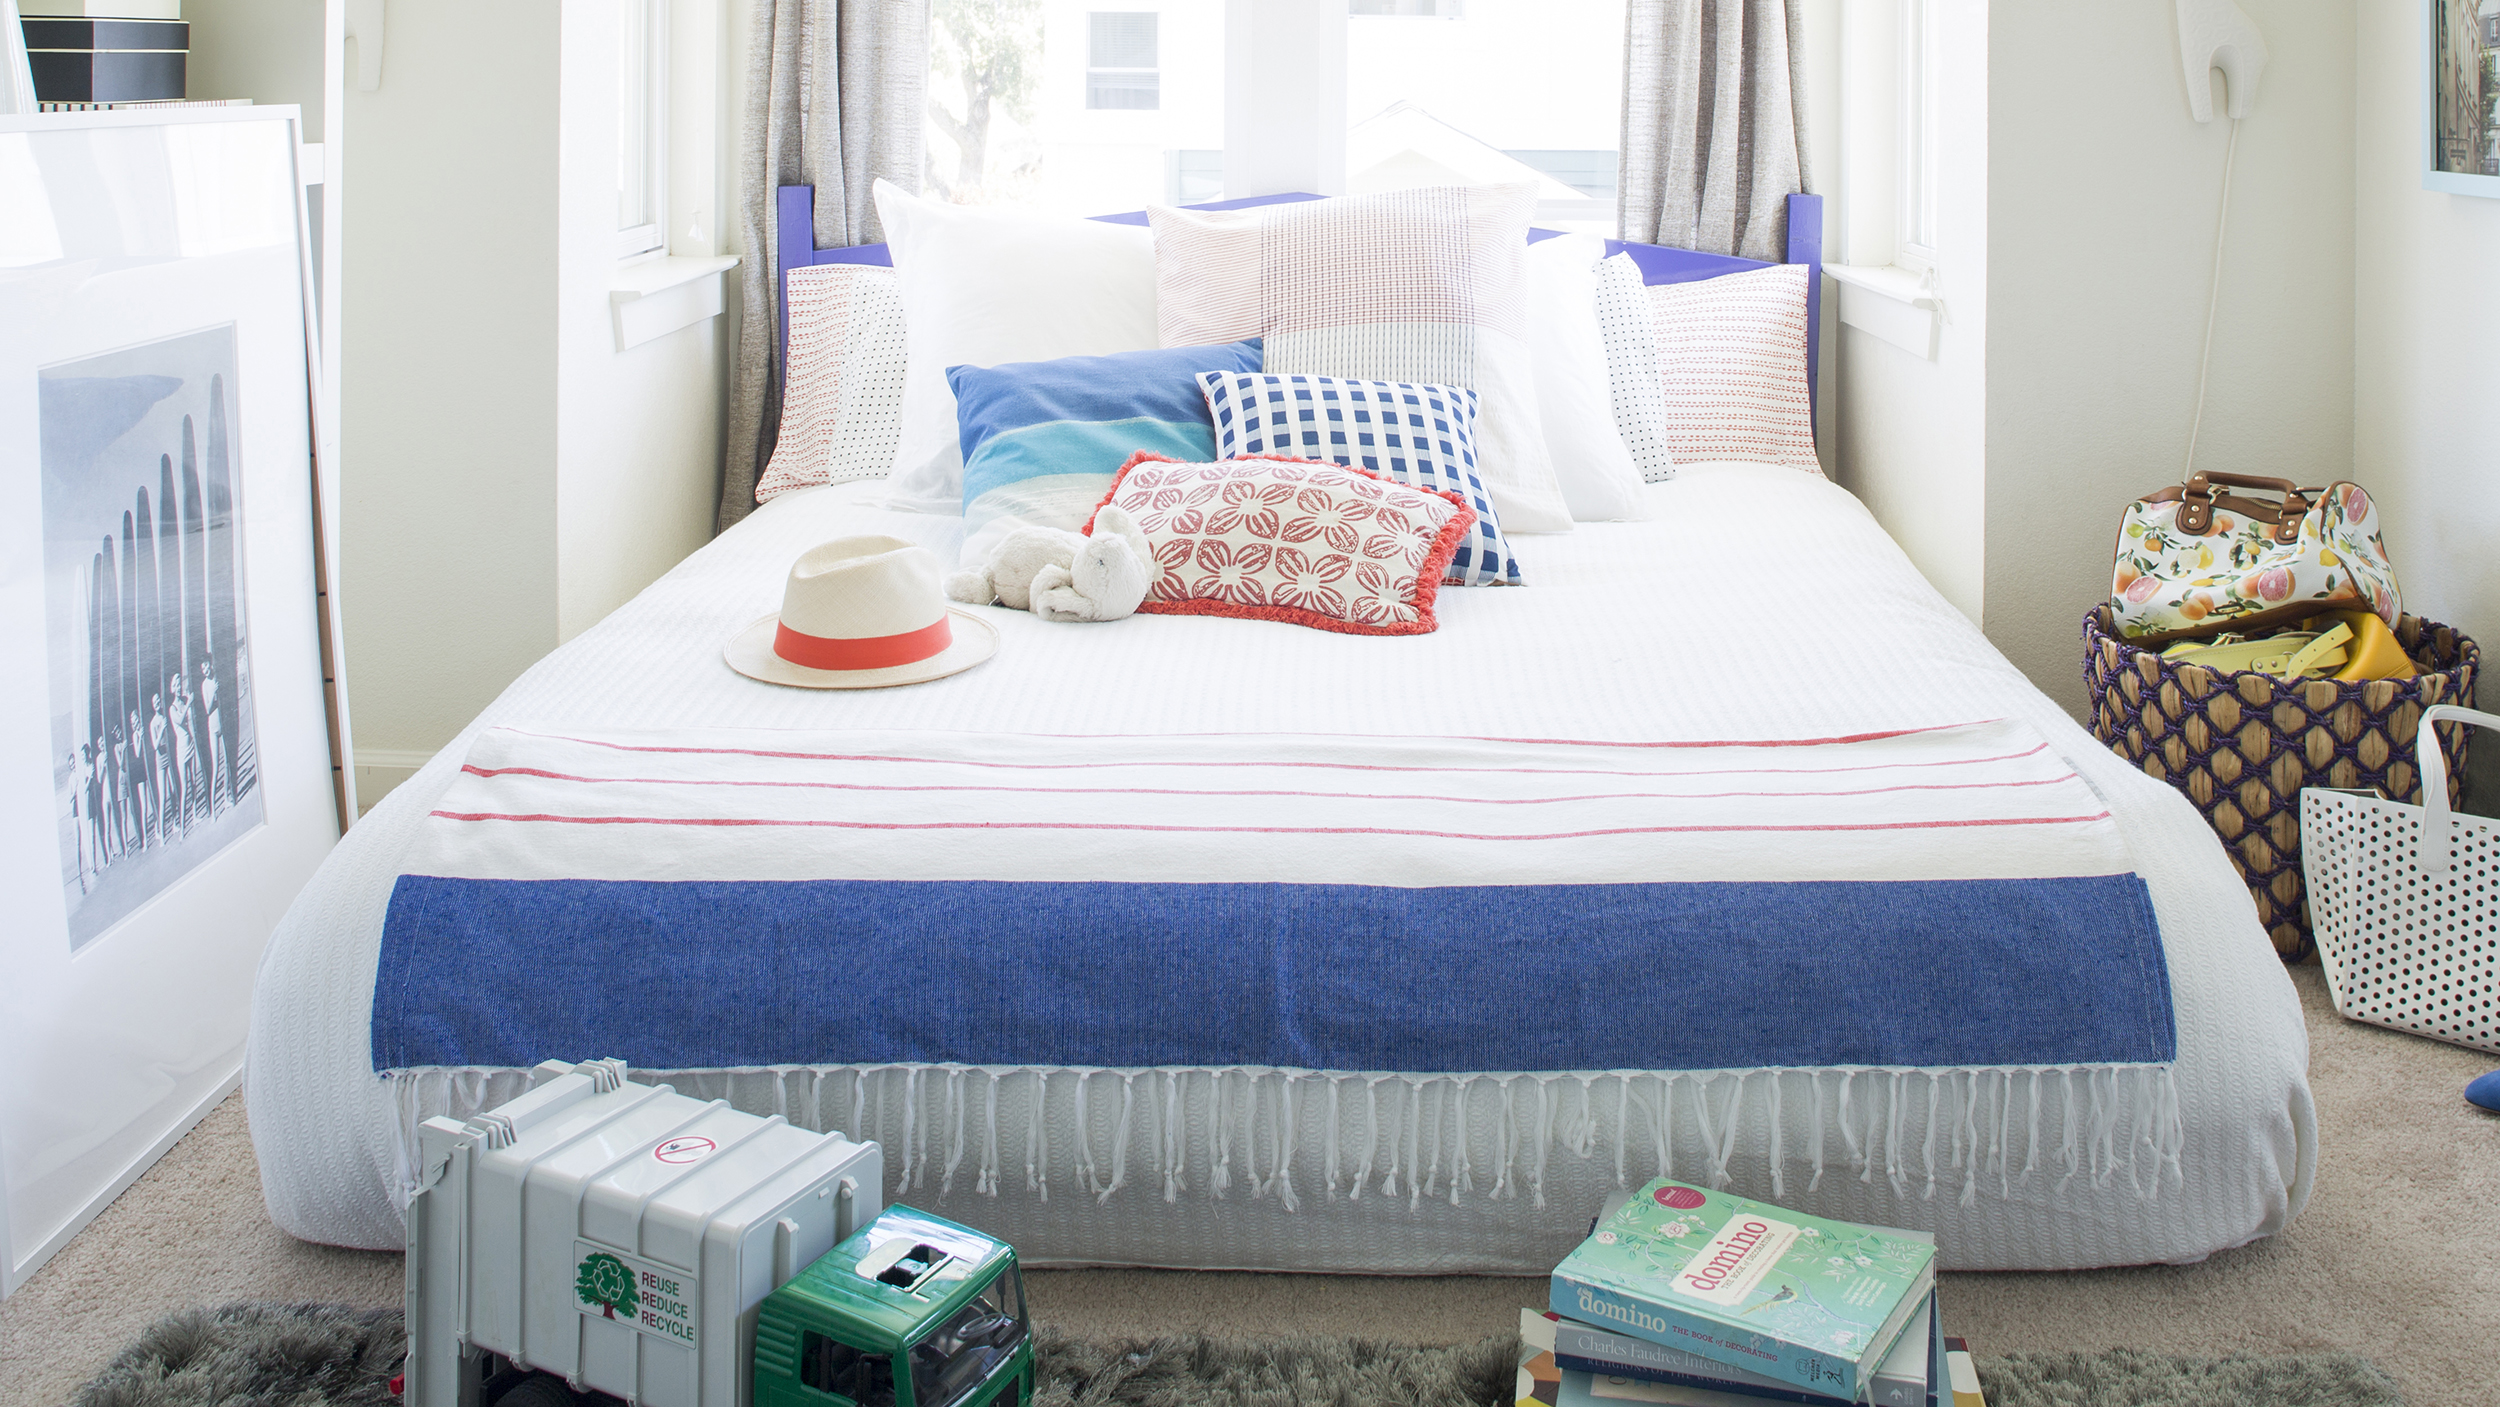 How to buy sheets and bedding